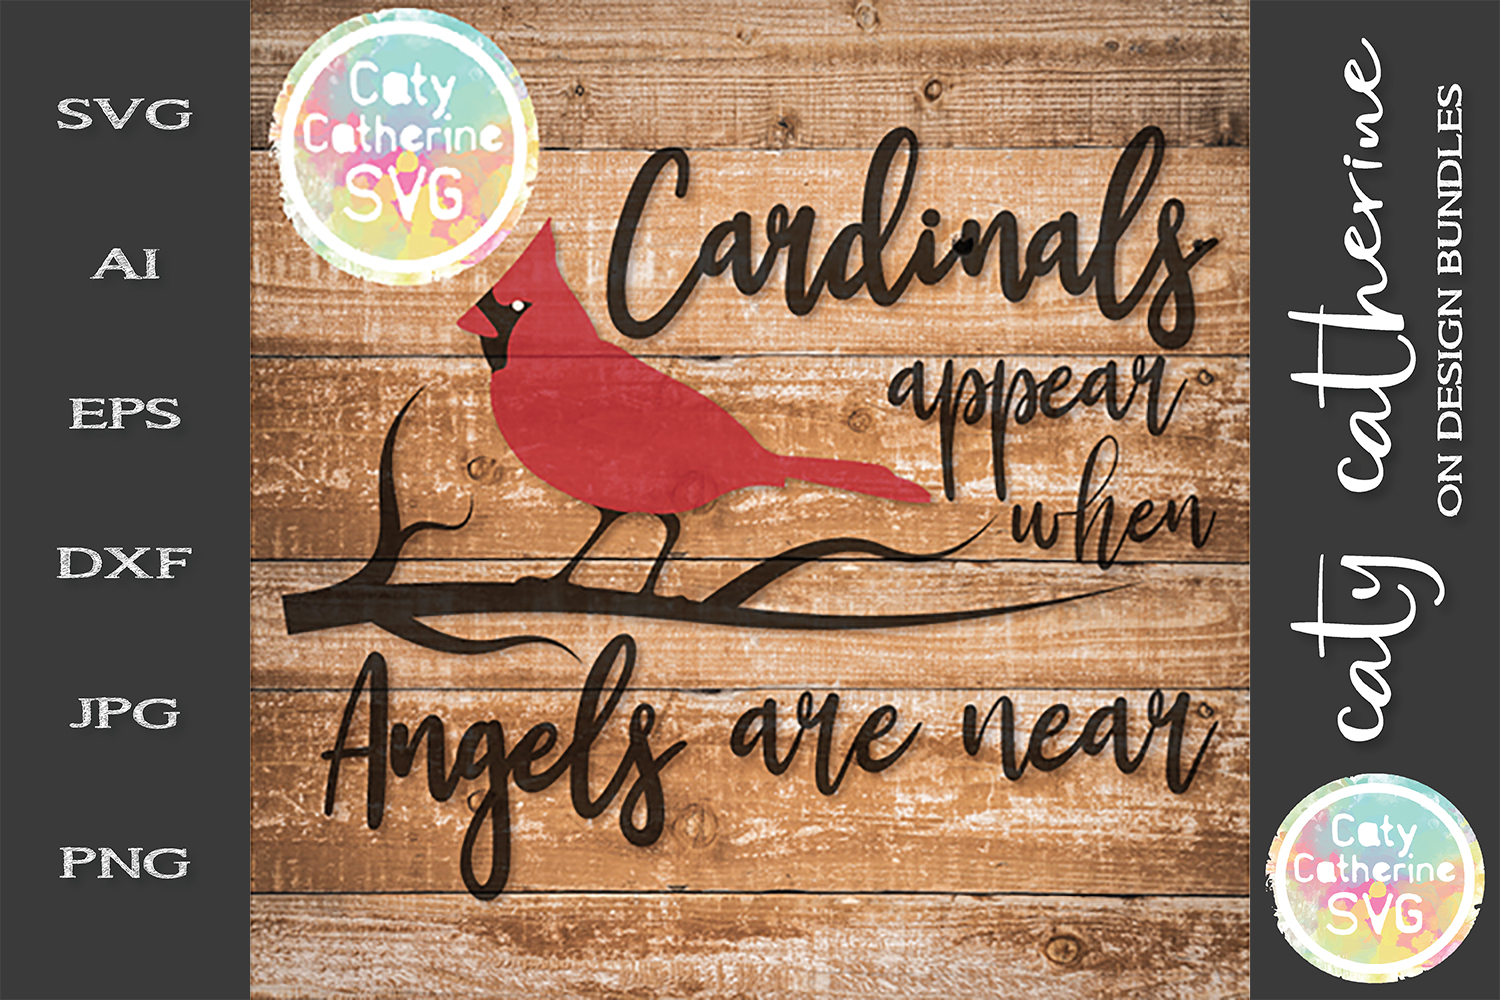 Cardinals Appear When Angels Are Near Remembrance SVG example image 1